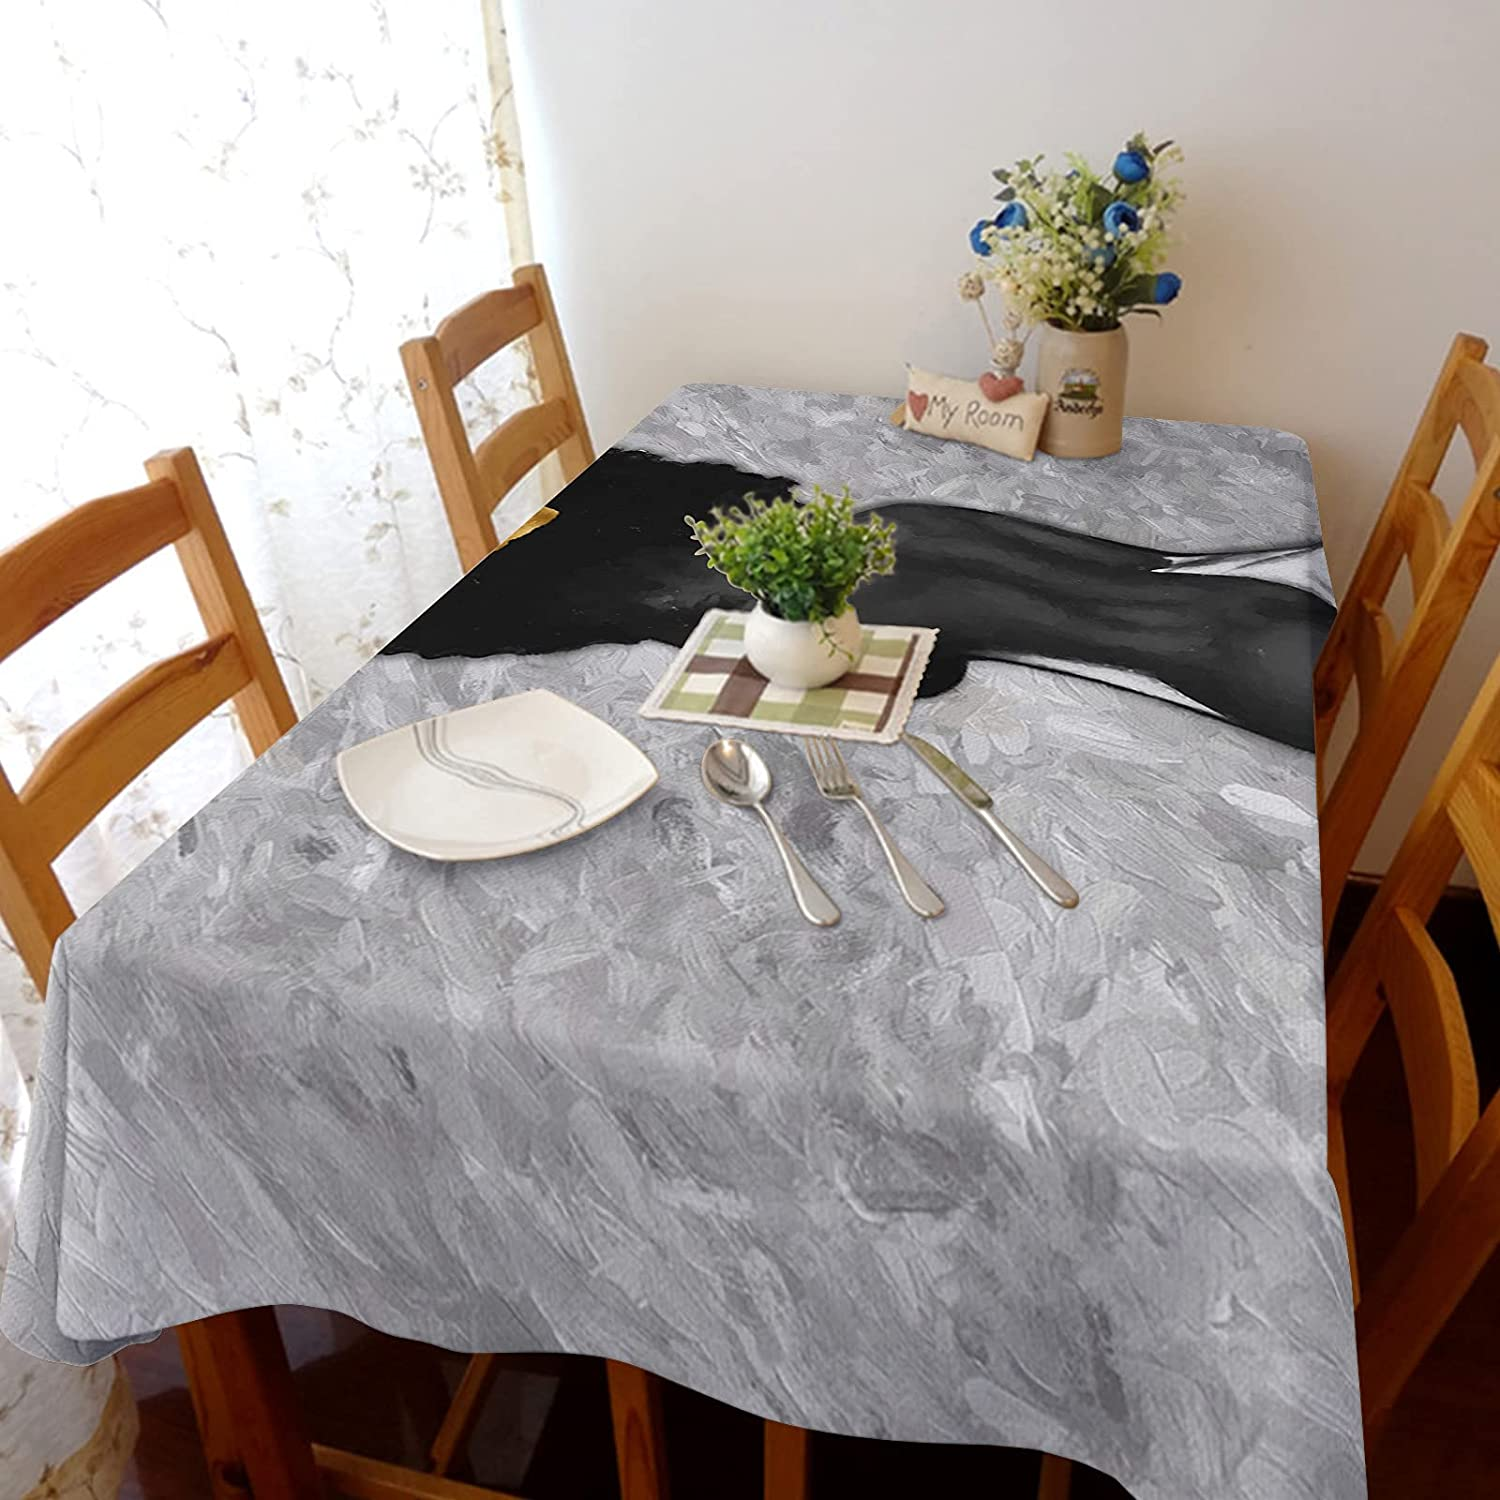 Arts Language Tablecloth for Square Black Round Sexy Table Ranking TOP17 Girl All items in the store